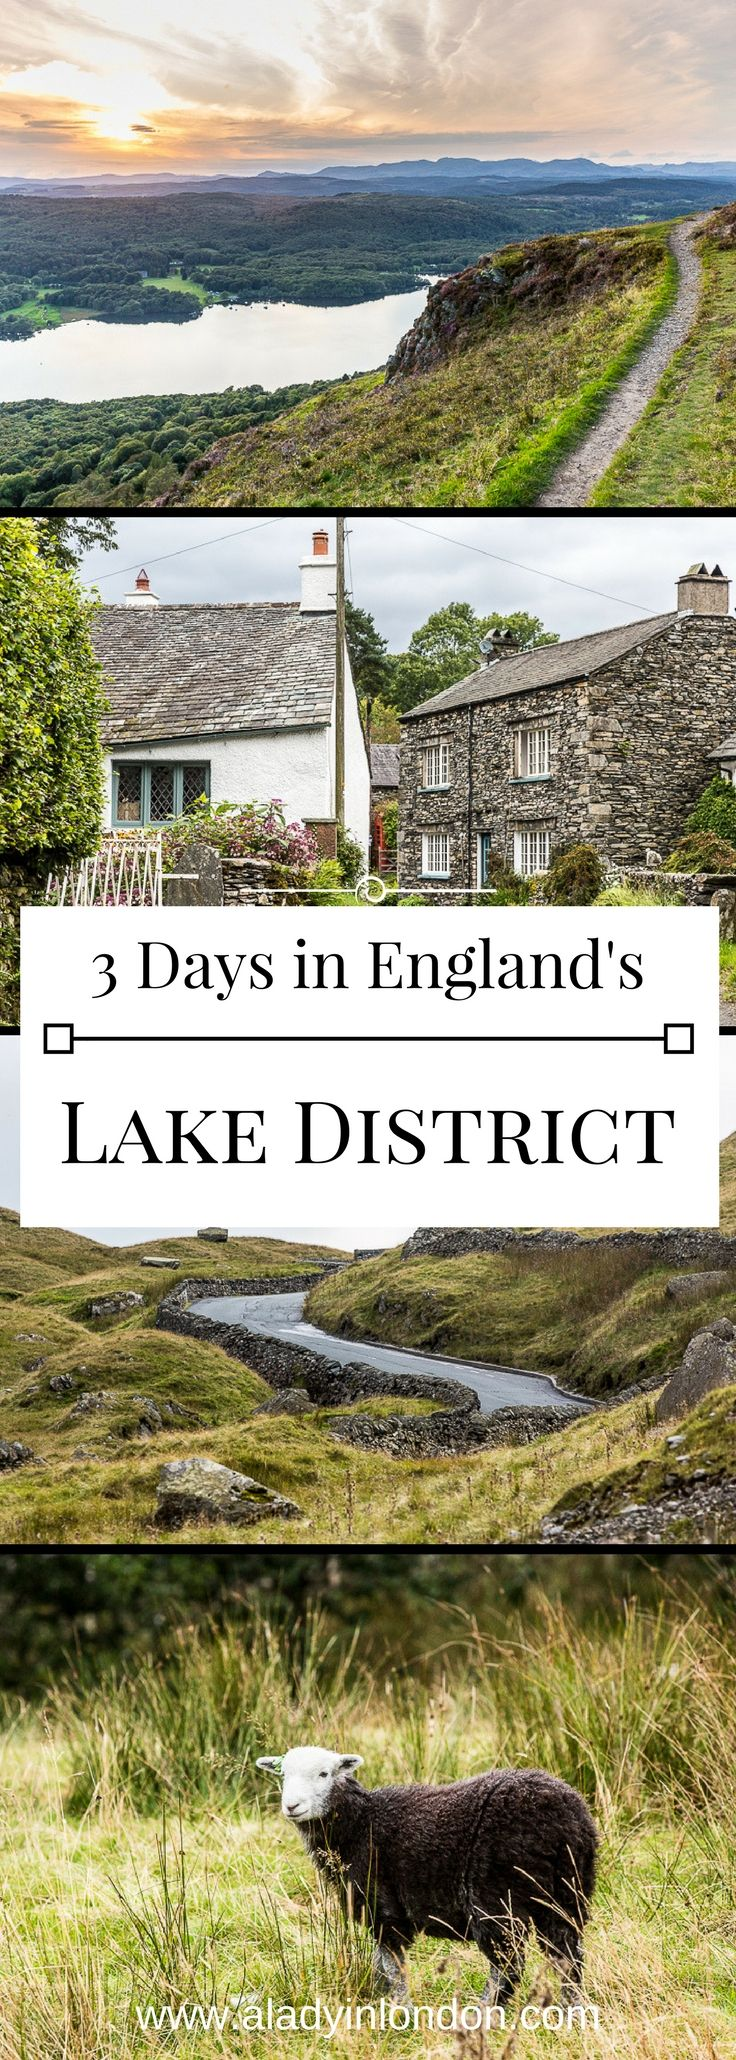 How to spend 3 incredible days in the Lake District, England. From the pretty villages to the lovely views, this part of Cumbria is a gem. #lakedistrict #england